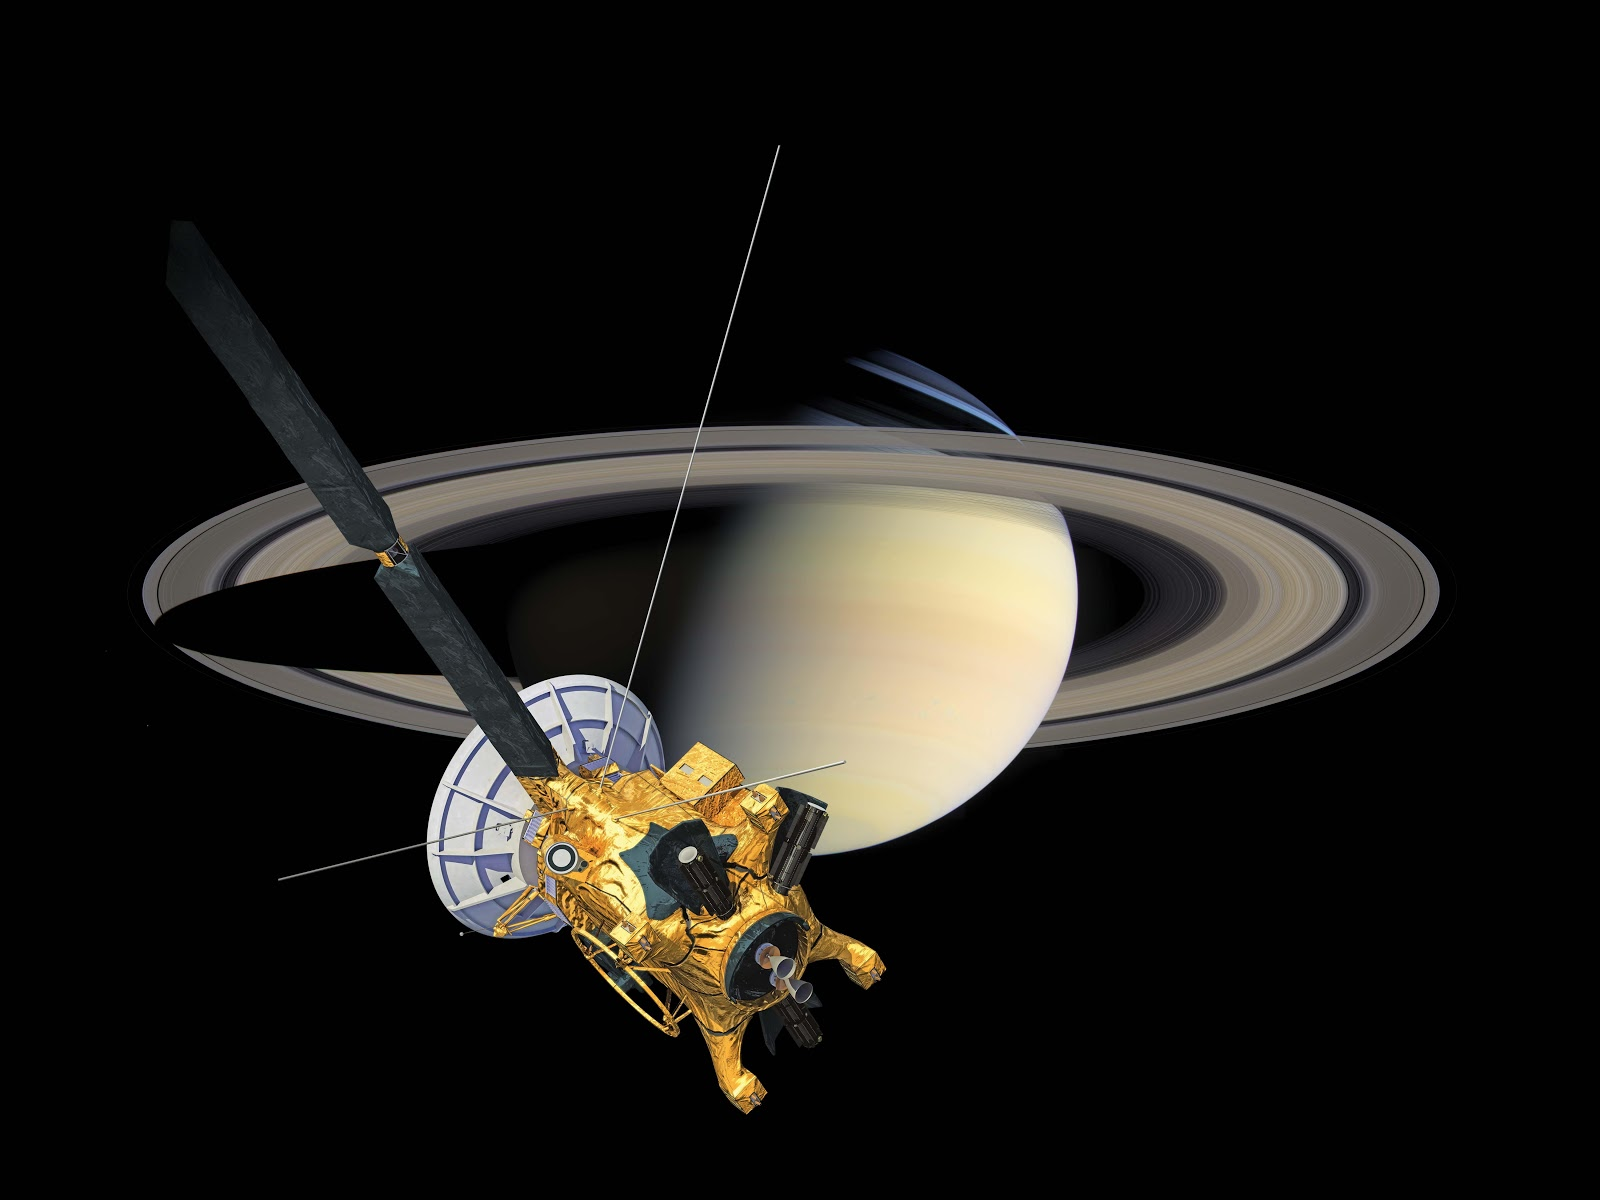 cassini space probe jupiter - photo #31